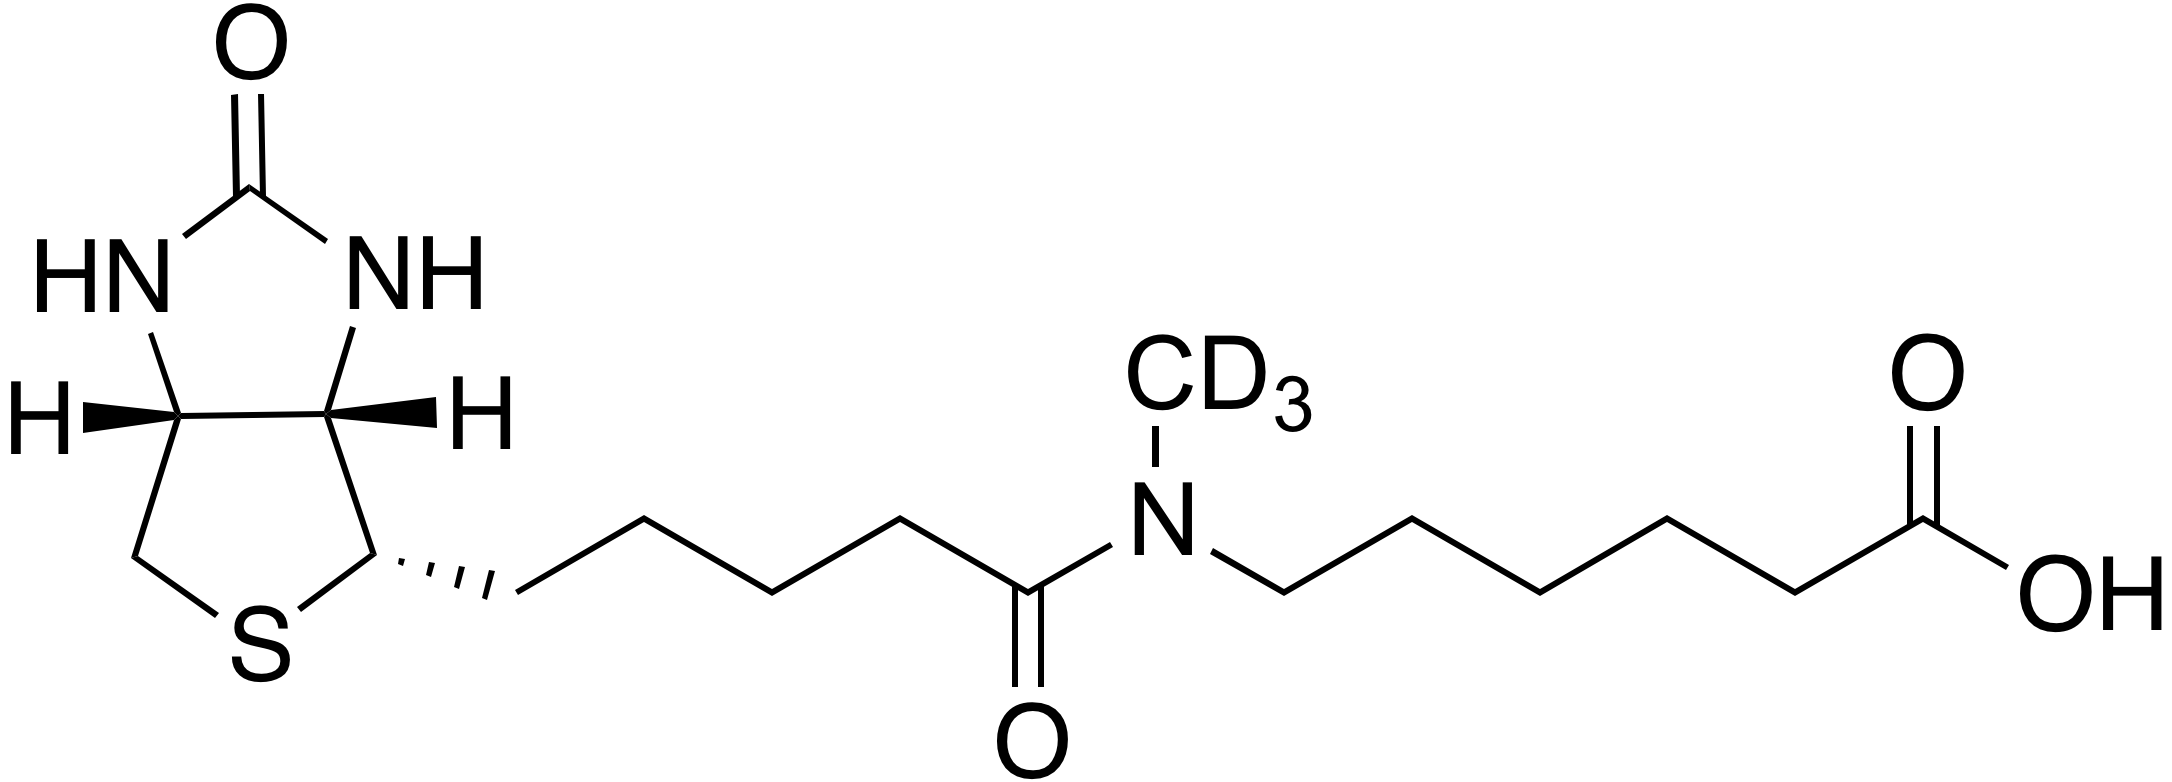 (N-Methyl-d<sub>3</sub>-N-biotinyl)-6-aminohexanoic acid